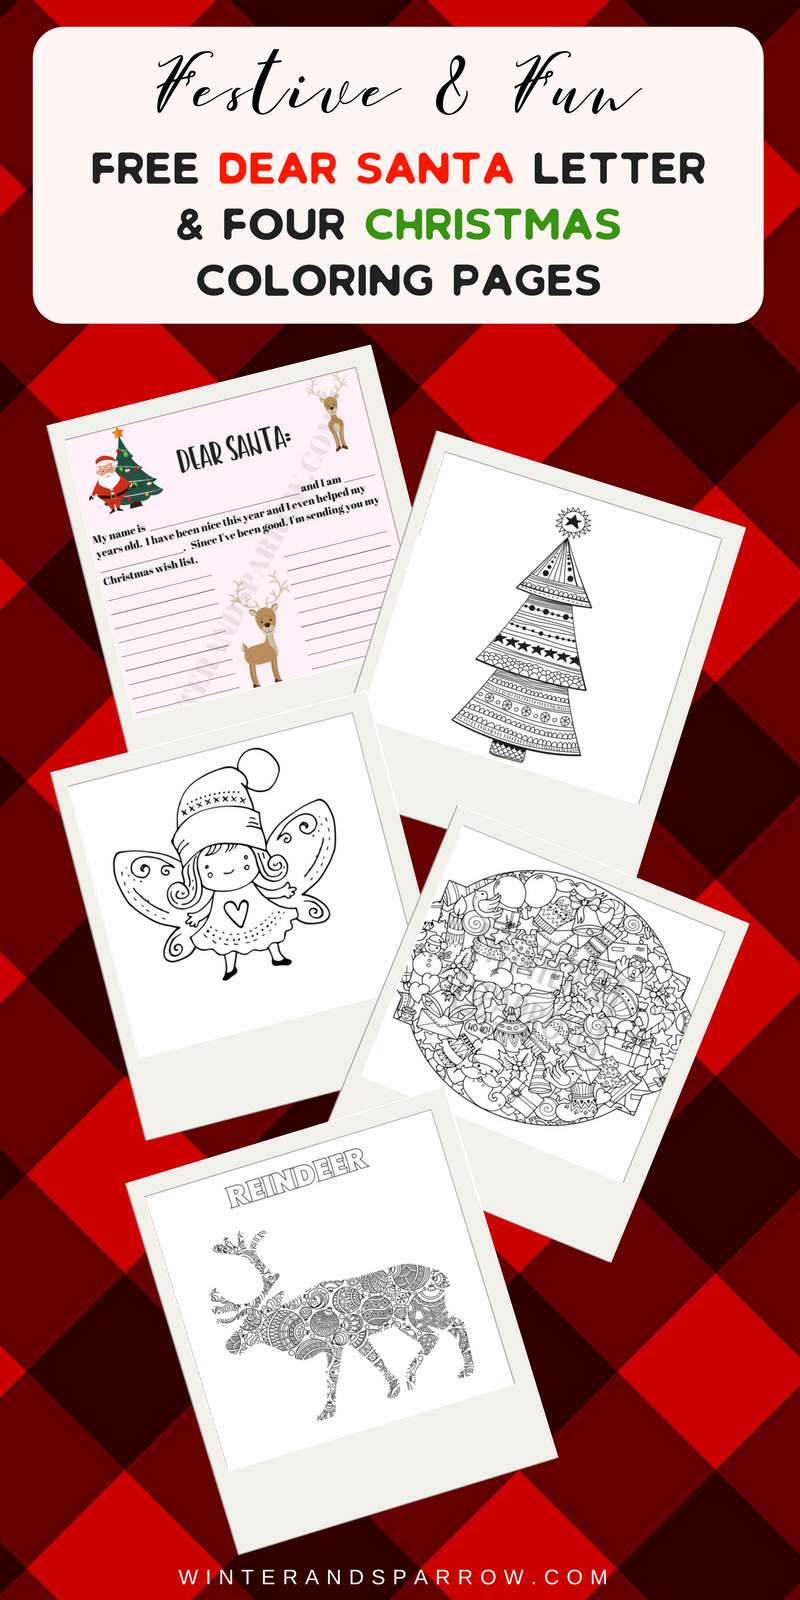 Dear Santa Letter Coloring Page With Free Four Christmas Pages